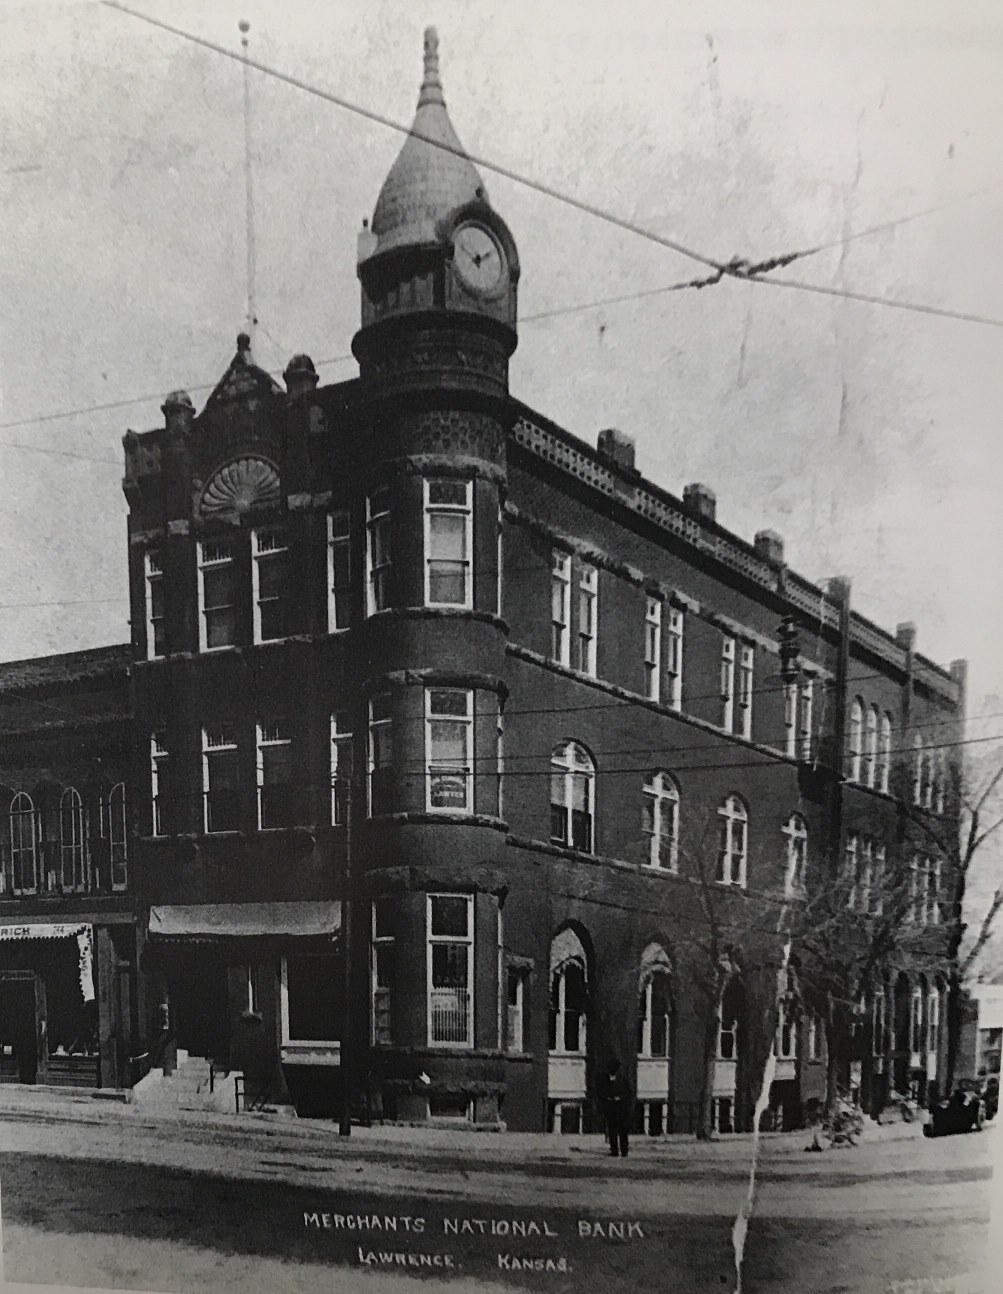 Merchants Bank first formed in 1877 and became a national bank in 1886. In 1930, it became the First National Bank of Lawrence. (Photo courtesy of Spencer Research Library, Pictorial History of Lawrence, Douglas County, Kansas. Taken about 1915.)